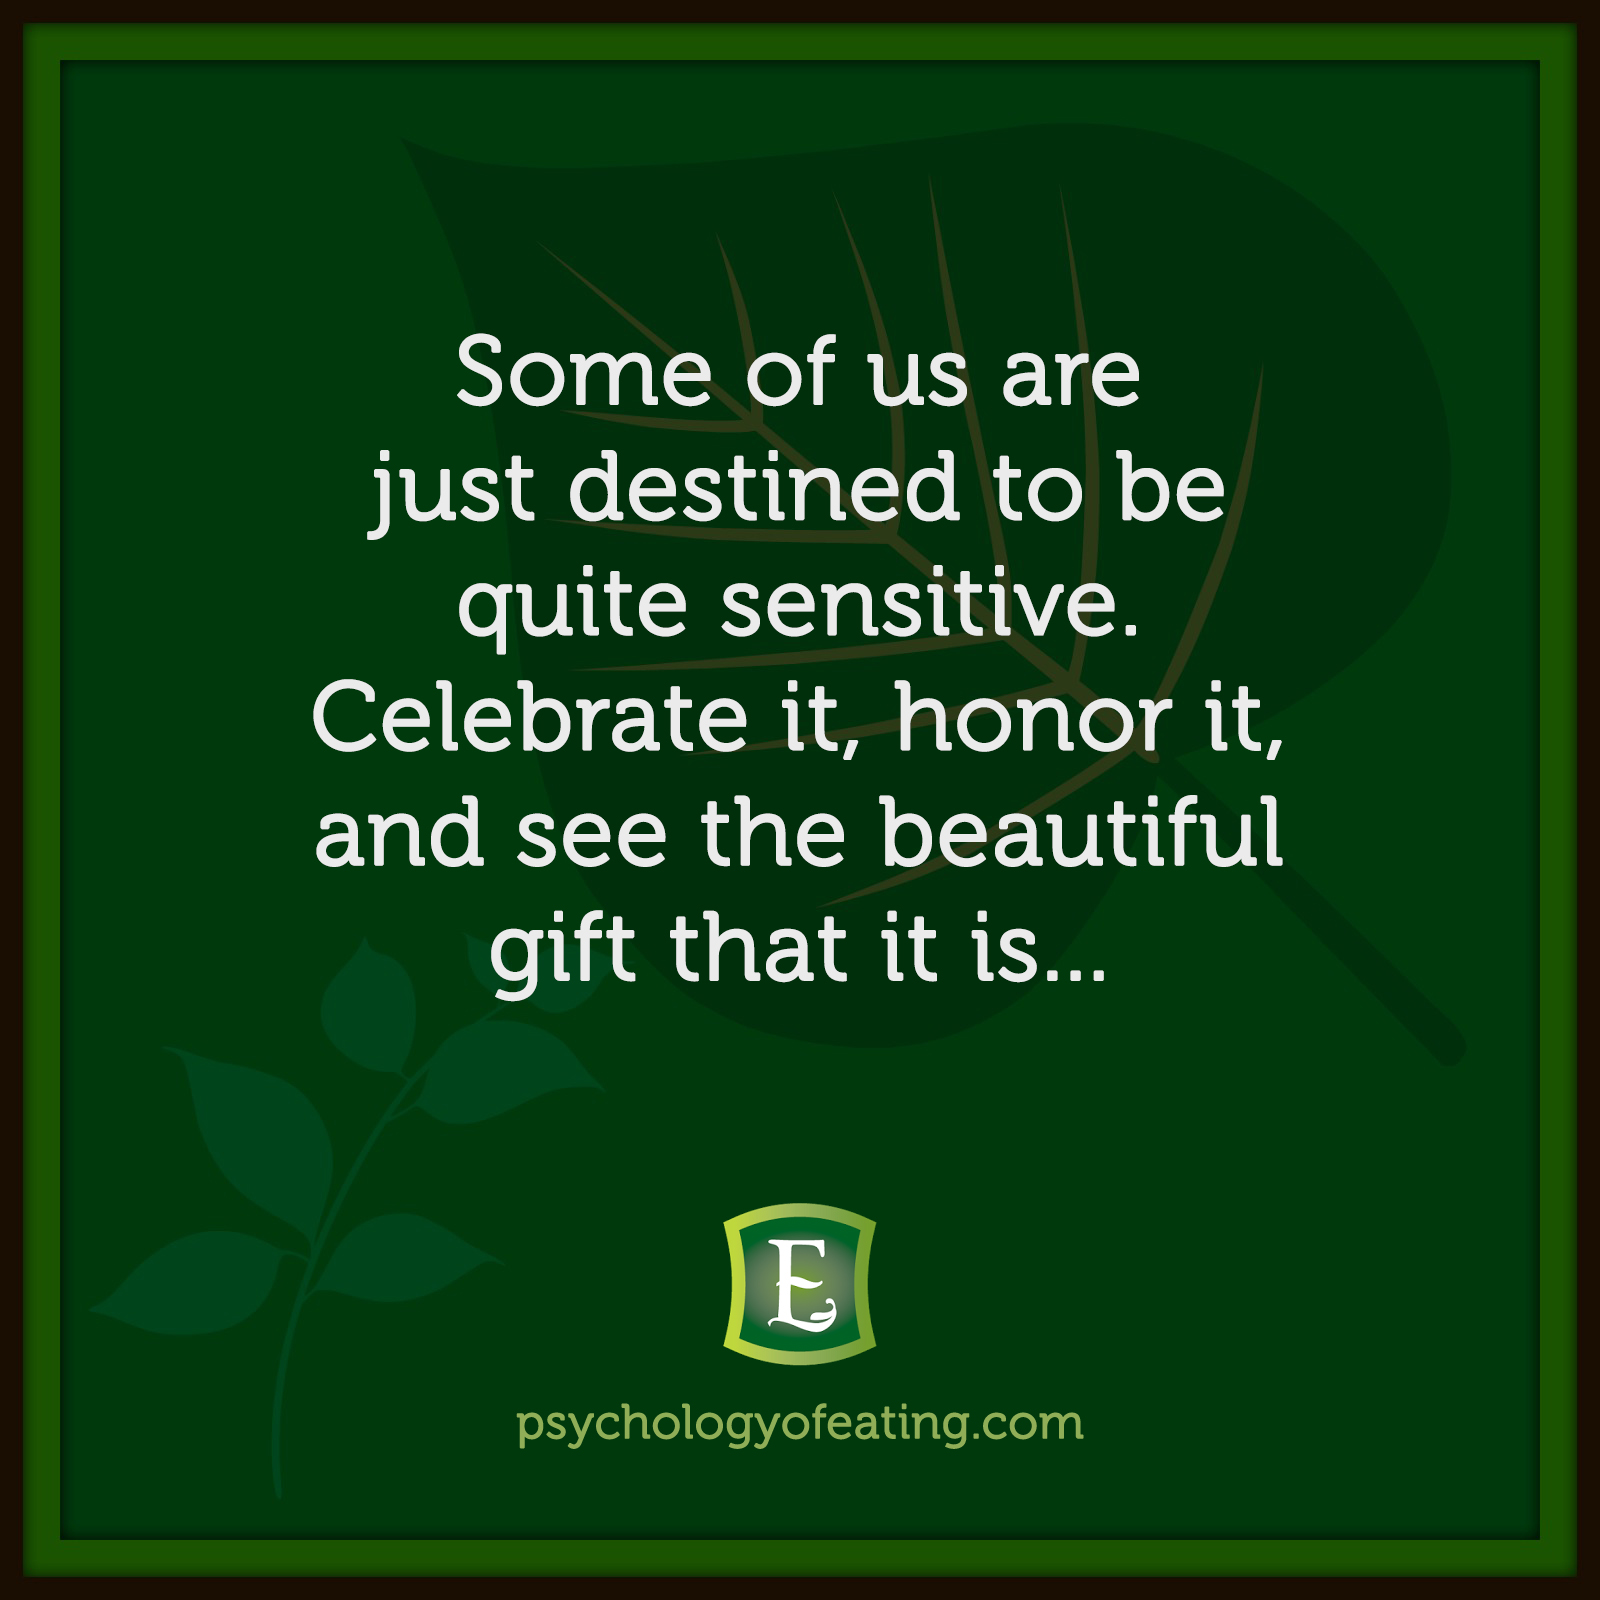 Some of us are just destined to be quite sensitive. Celebrate it, honor it, and see the beautiful gift that it is… #health #nutrition #eatingpsychology #IPE